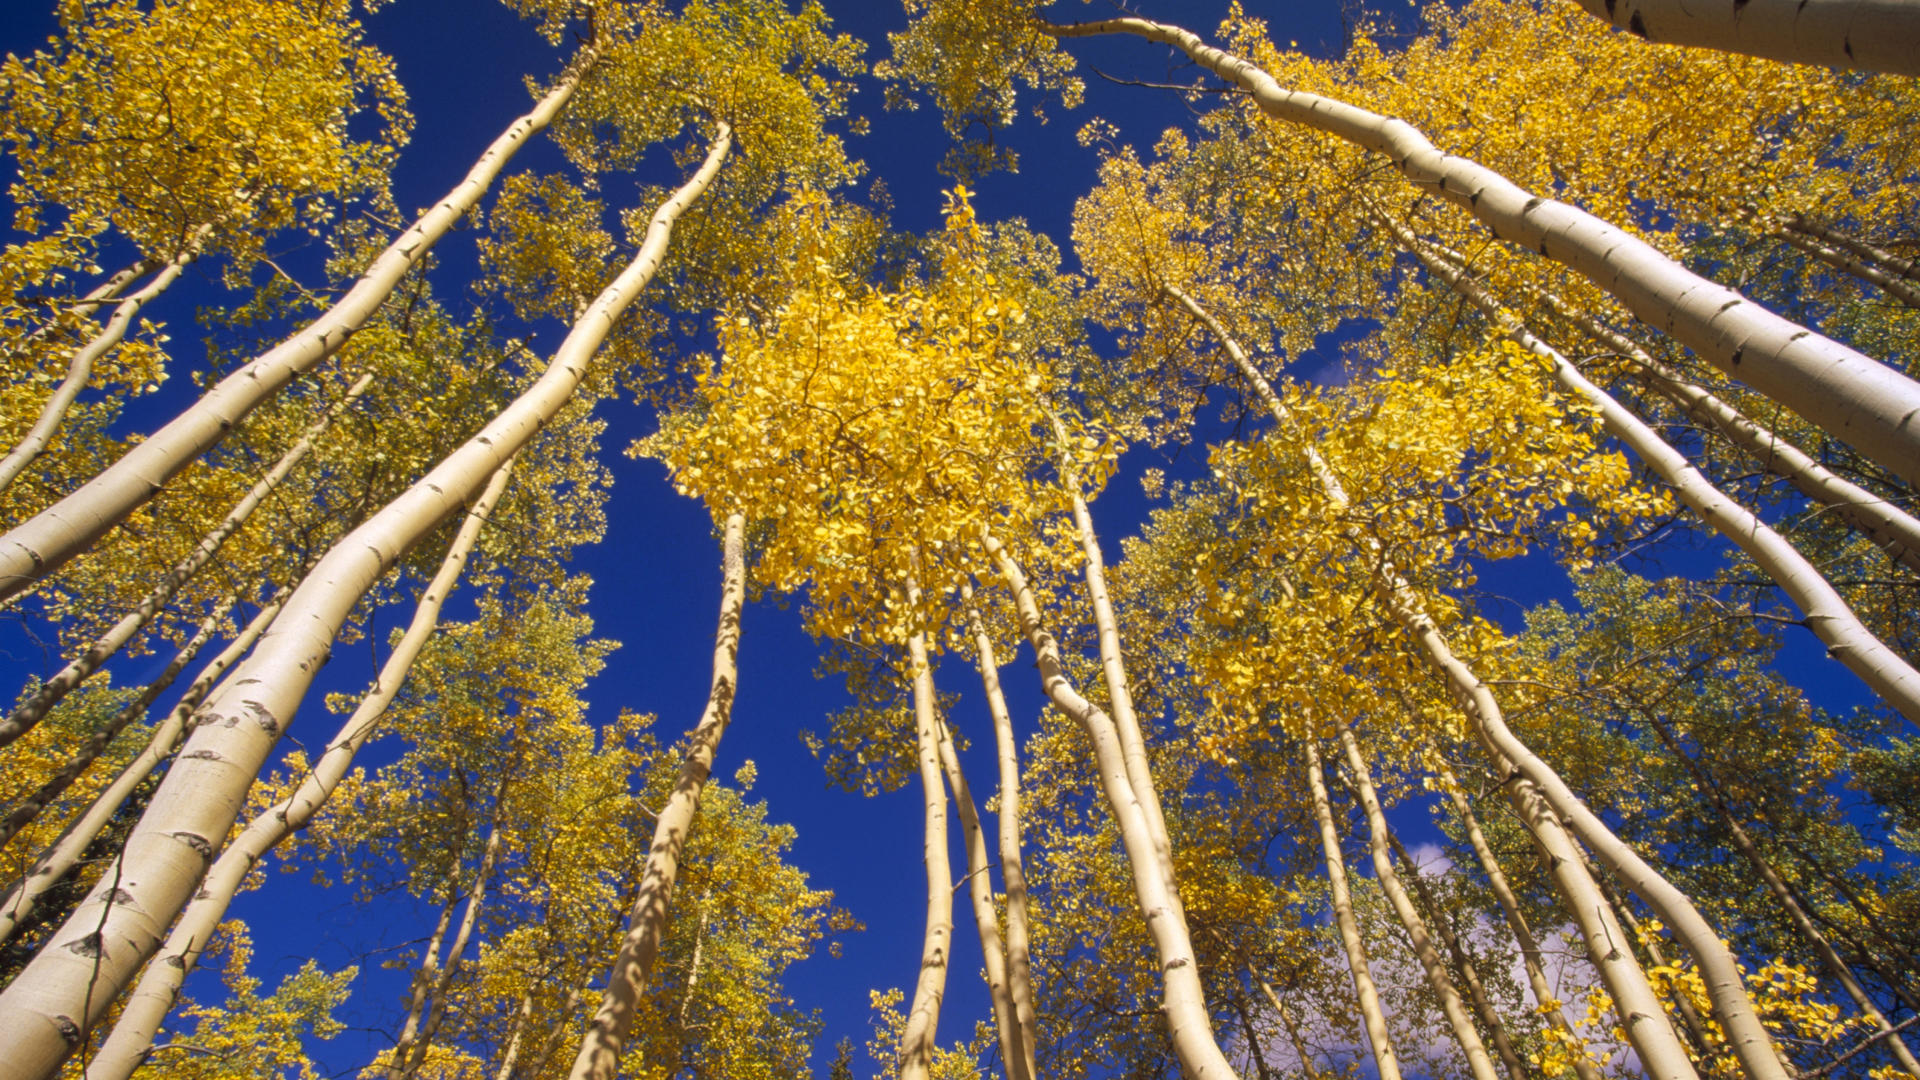 ASPEN (Populus tremuloides), TREES IN FALL COLOR, VIEW LOOKING UP FROM FOREST FLOOR, YUKON, CANADA